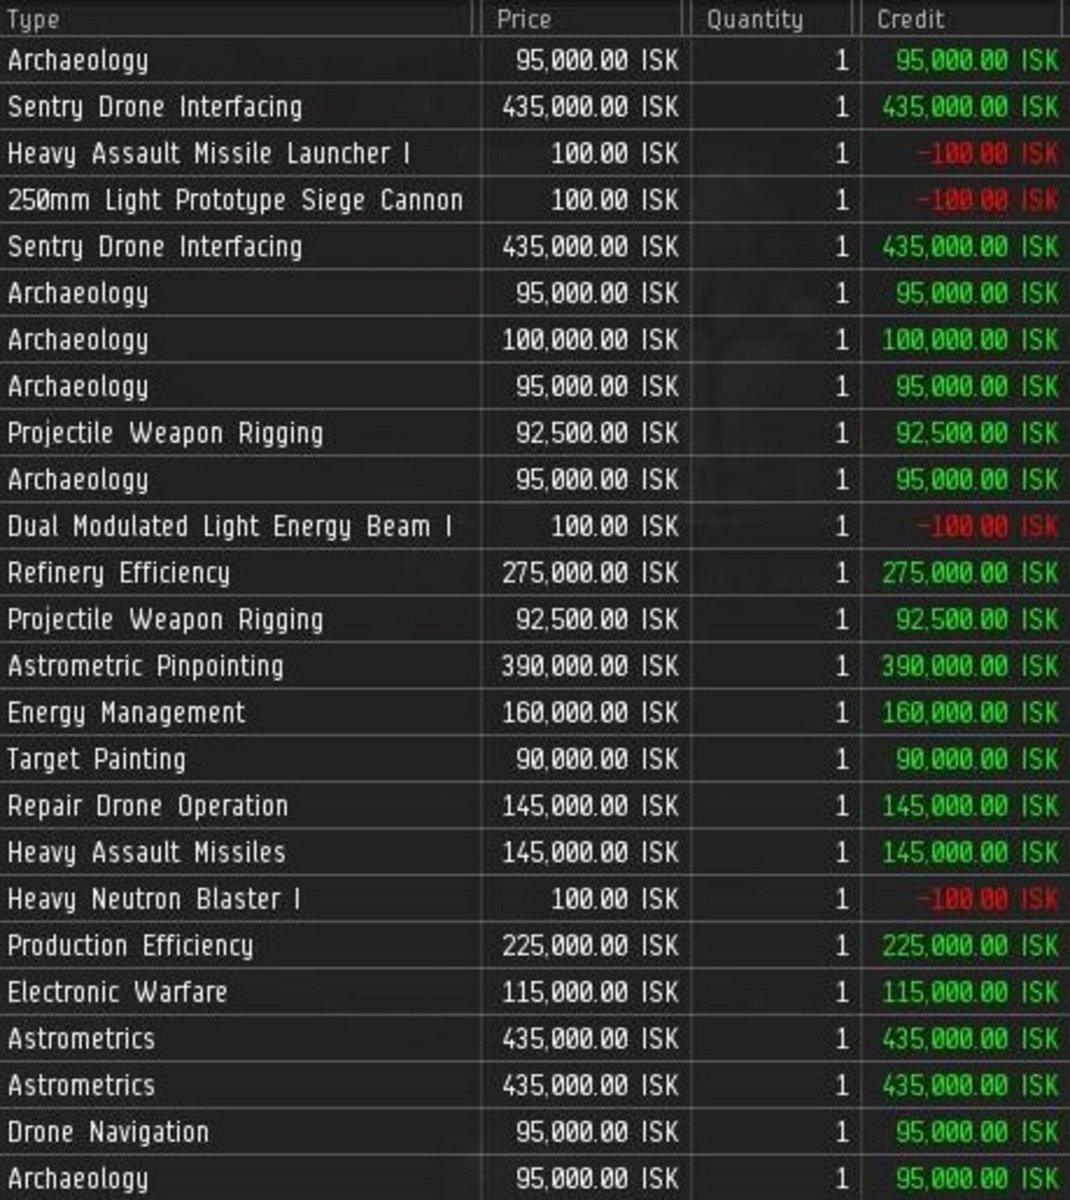 An examples of transactions made in EVE Online.  The green shows ISK earned, while the red shows ISK spent.